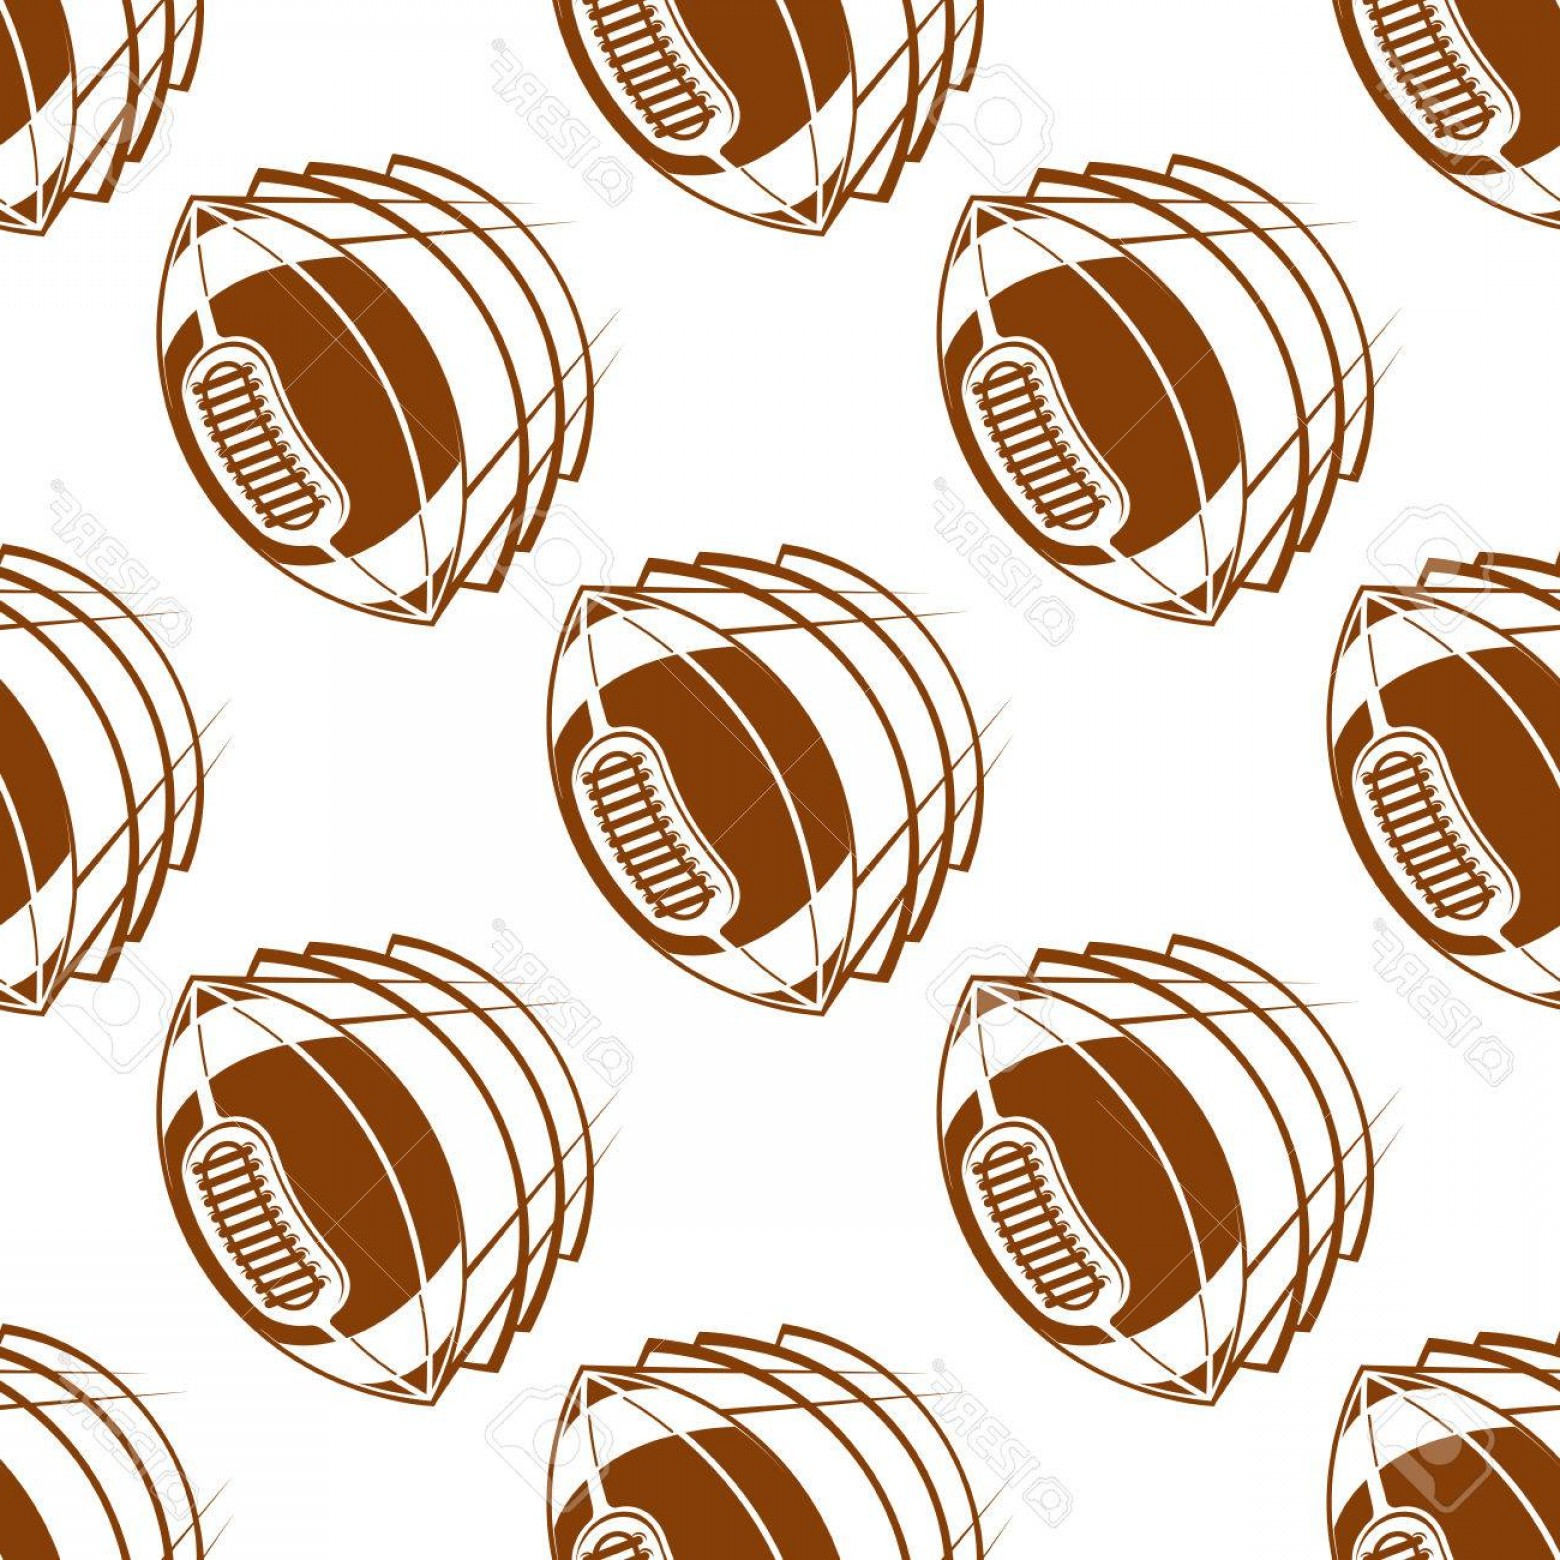 Vector Football Laces And Lines: Photostock Vector Brown Rugby Balls Seamless Pattern Showing Flying American Football Balls With Traditional Lacing On